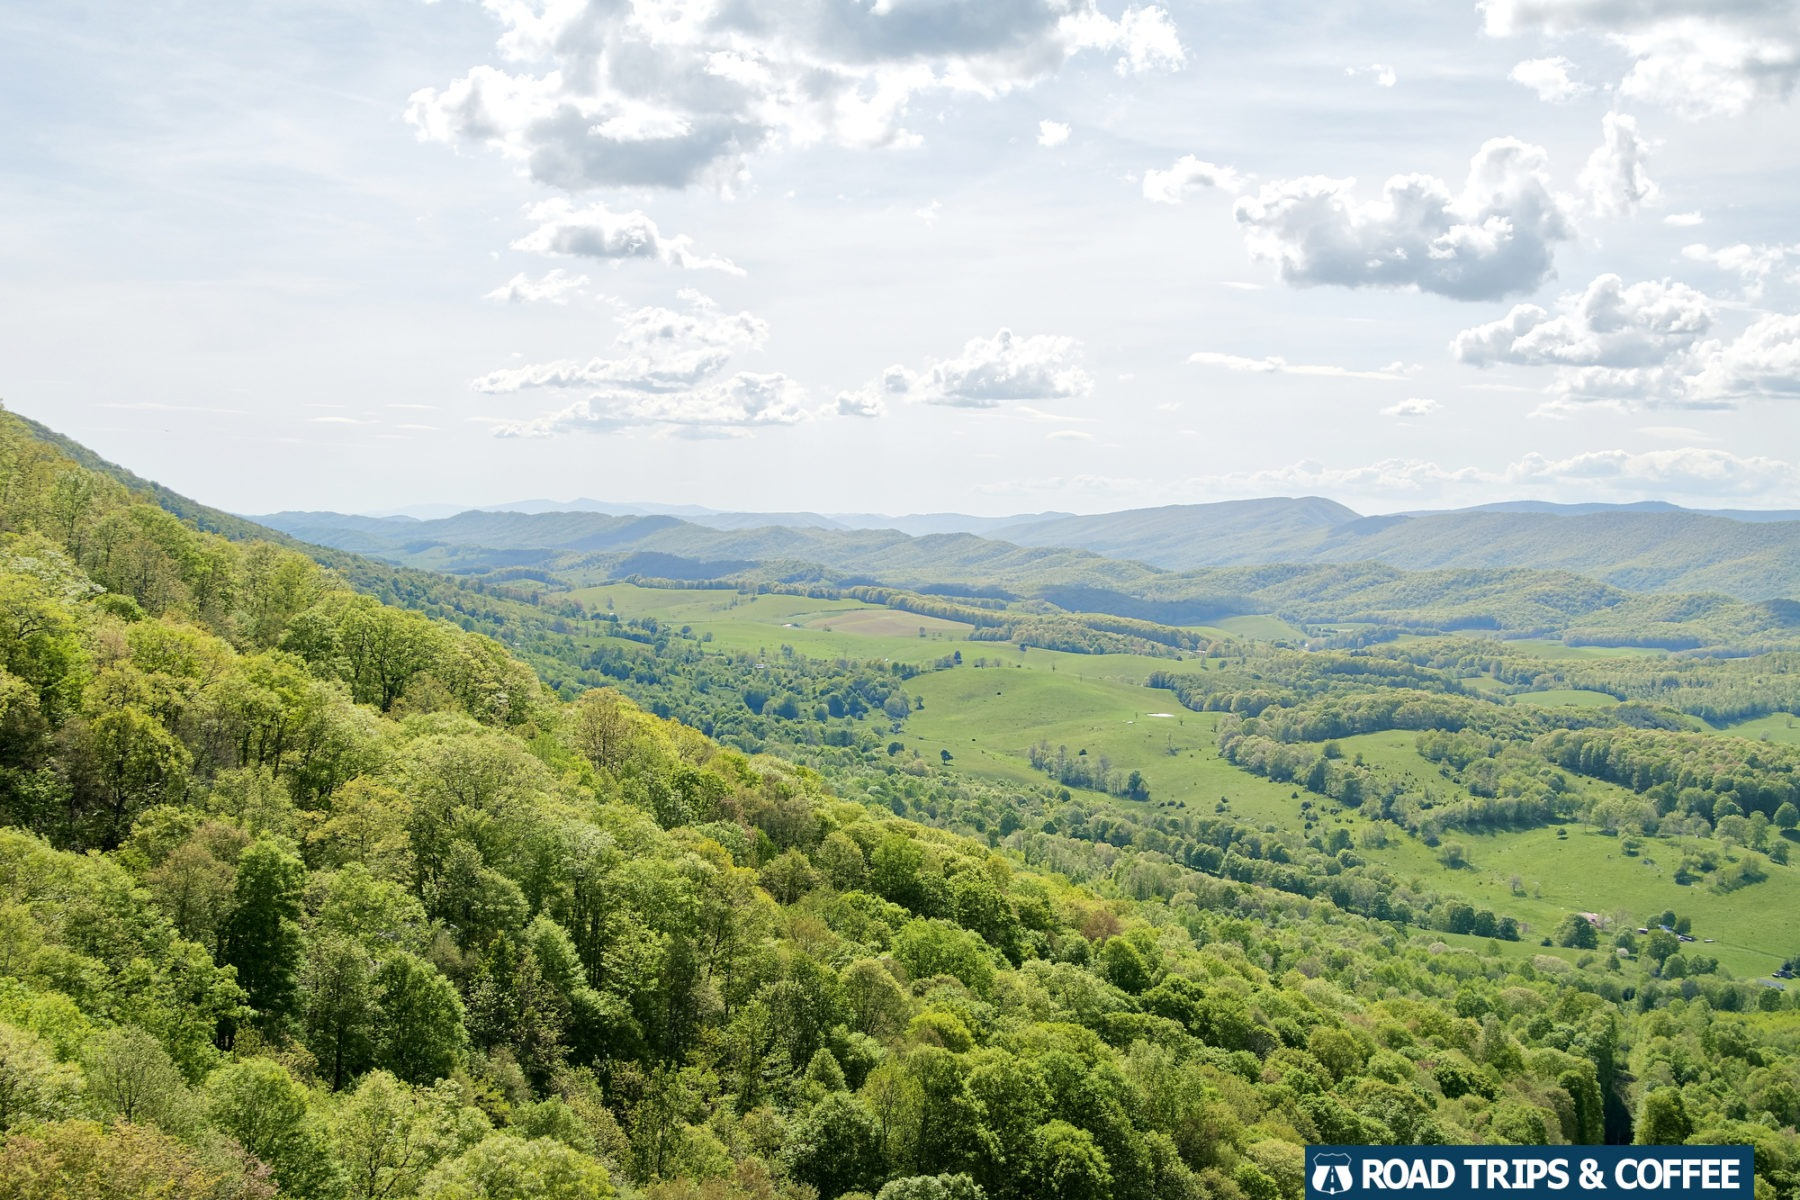 The view of the mountain landscape from the top of the Big Walker Lookout in Wytheville, Virginia